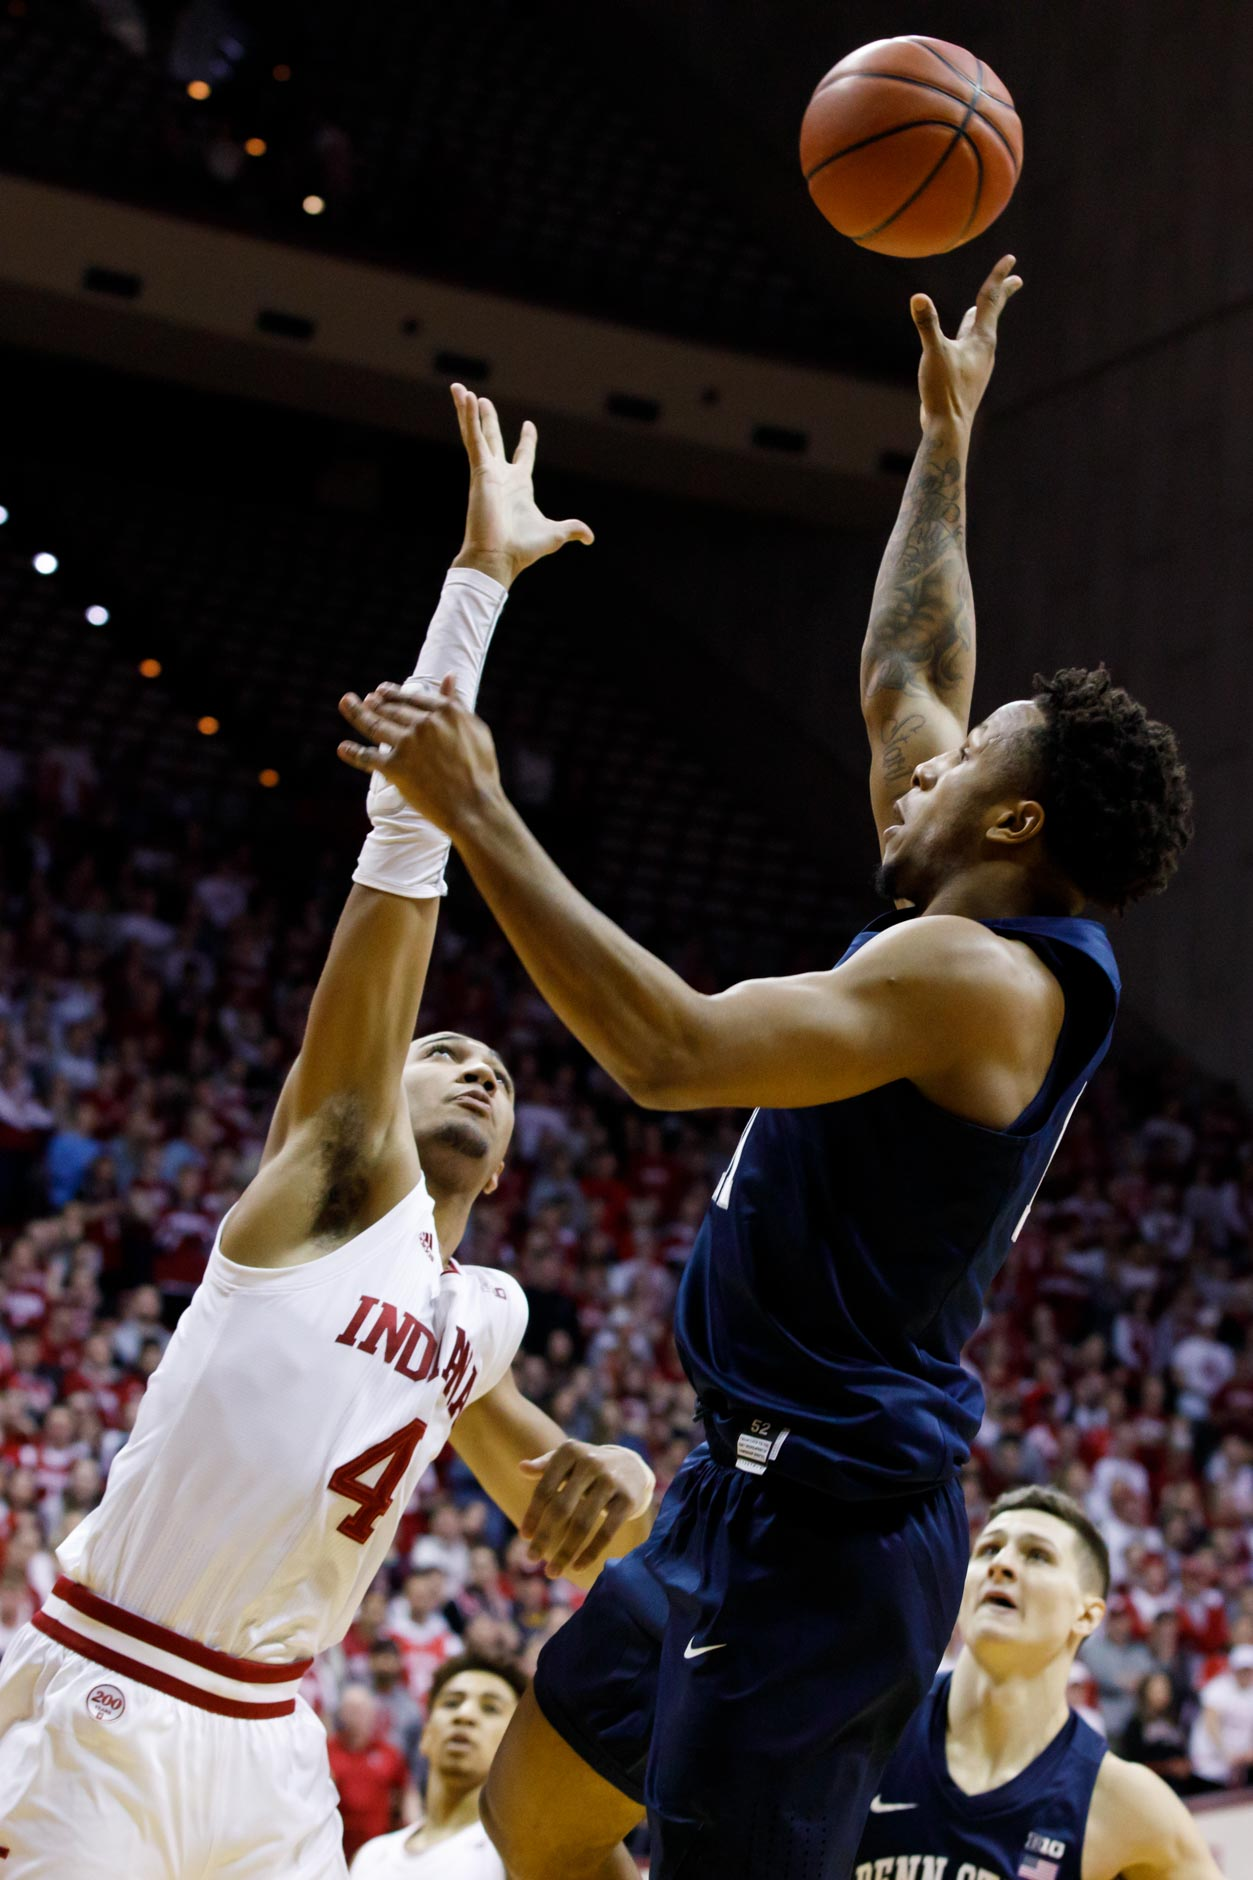 Penn State's Lamar Stevens (11) shoots over Indiana's Trayce Jackson-Davis (4) during a NCAA men's basketball game at Simon Skjodt Assembly Hall in Bloomington, Indiana on Sunday, Feb. 23, 2020. (Photo by James Brosher)